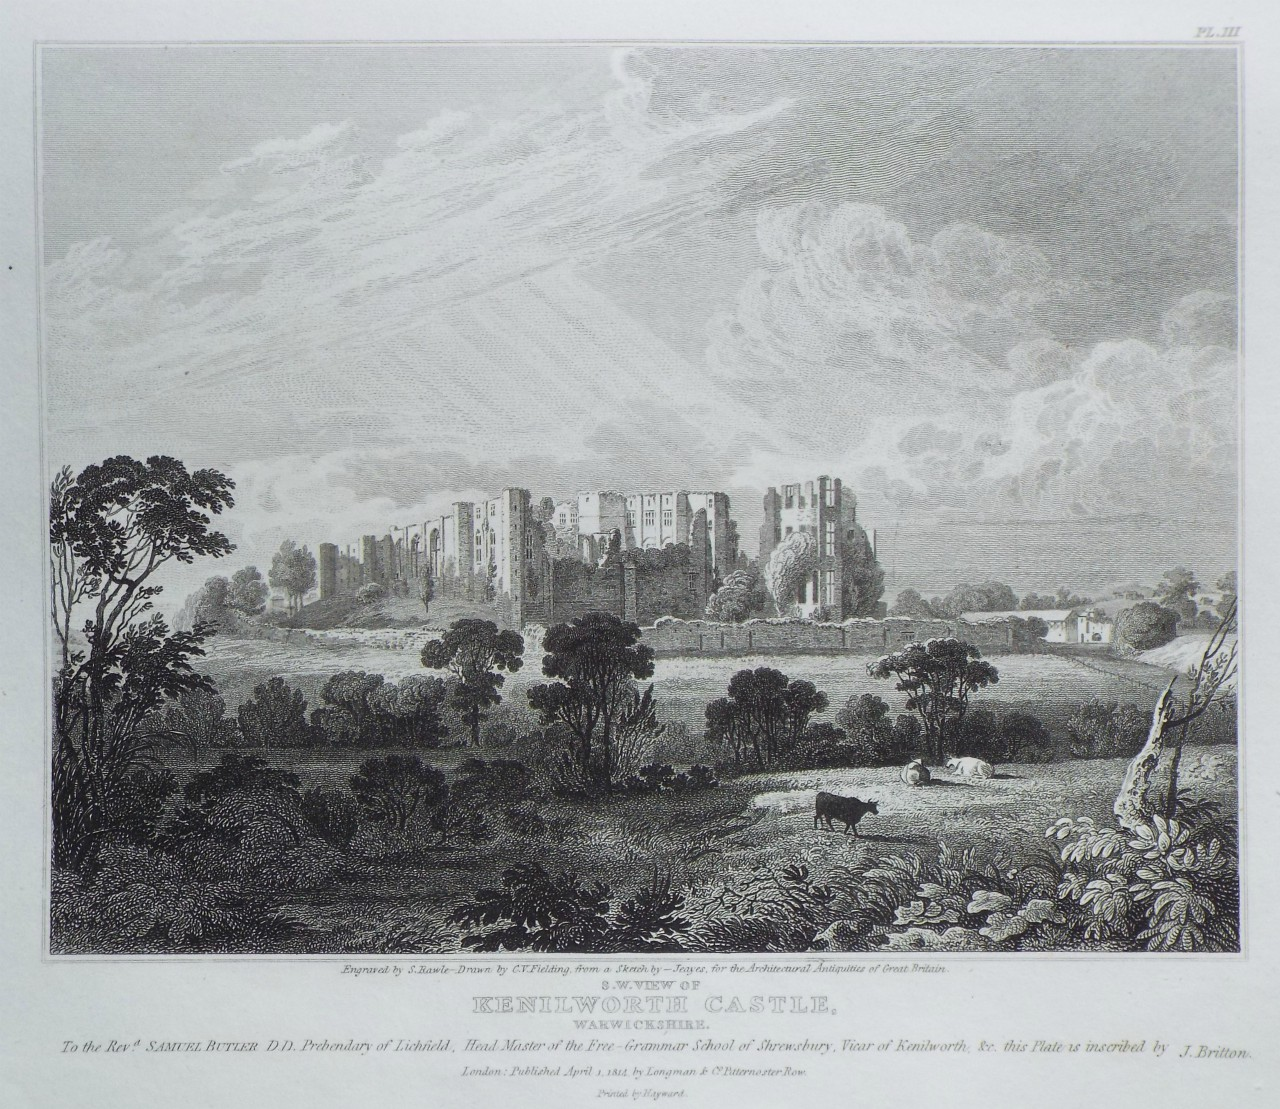 Print - S. W. View of Kenilworth Castle, Warwickshire. - Rawle